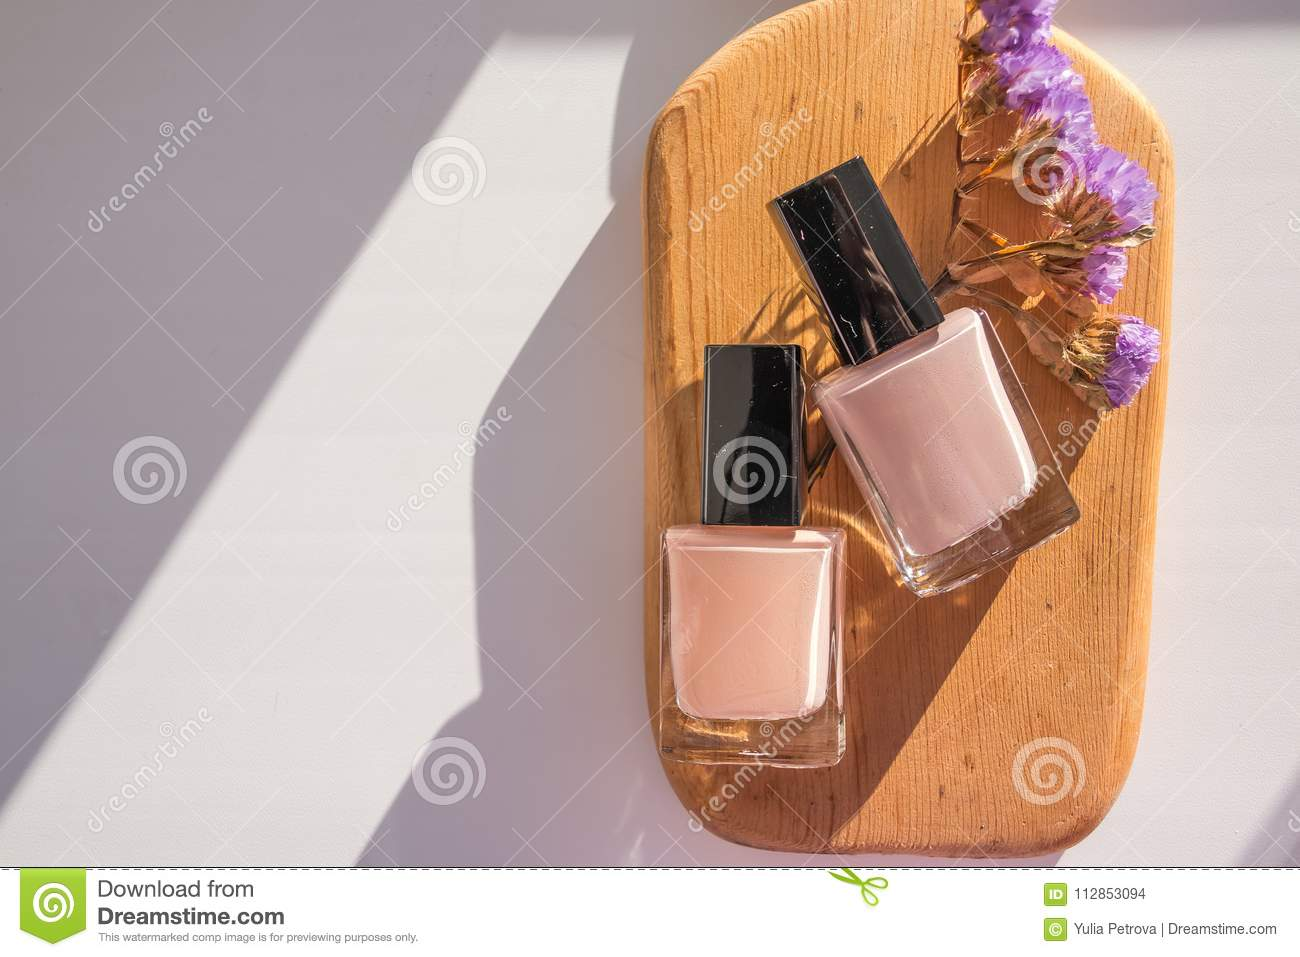 Manicure Beauty Treatment Photo Pastel Colors Set On Wooden Board